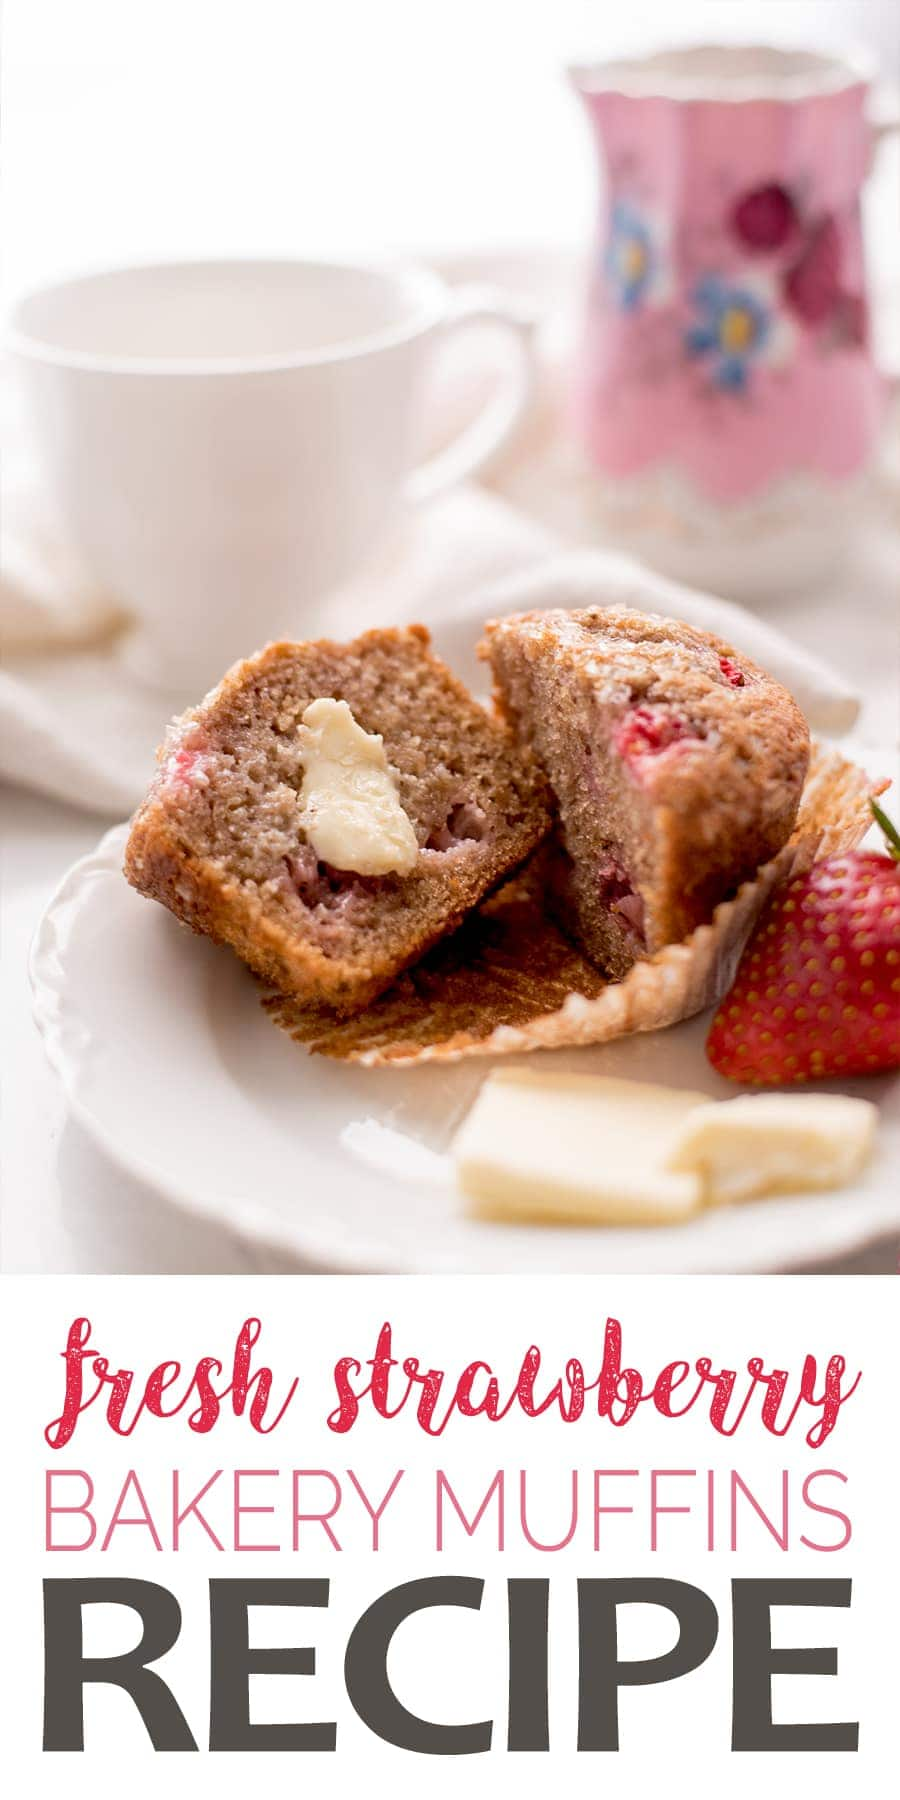 These Bakery Style Strawberry Muffins bake up tall and moist just like the ones you buy at your favorite coffee shop. Sweet, fruity and so tender! #strawberry #strawberrymuffins #baking #muffins #breakfast #bakerystyle